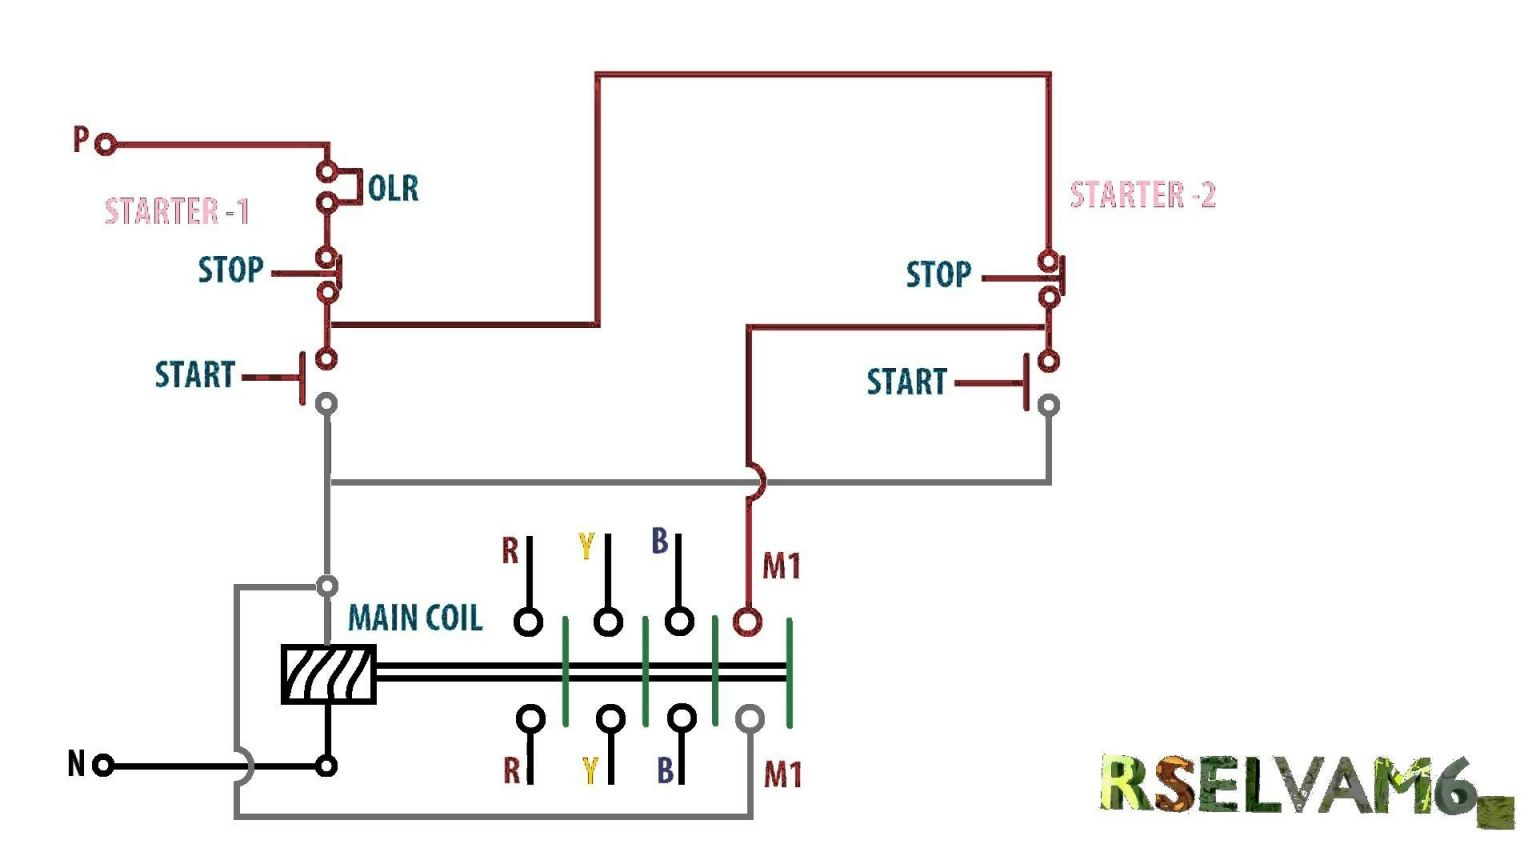 Luxury 3 Phase Contactor Wiring Diagram Start Stop - Wiring Diagram - Motor Starter Wiring Diagram Start Stop